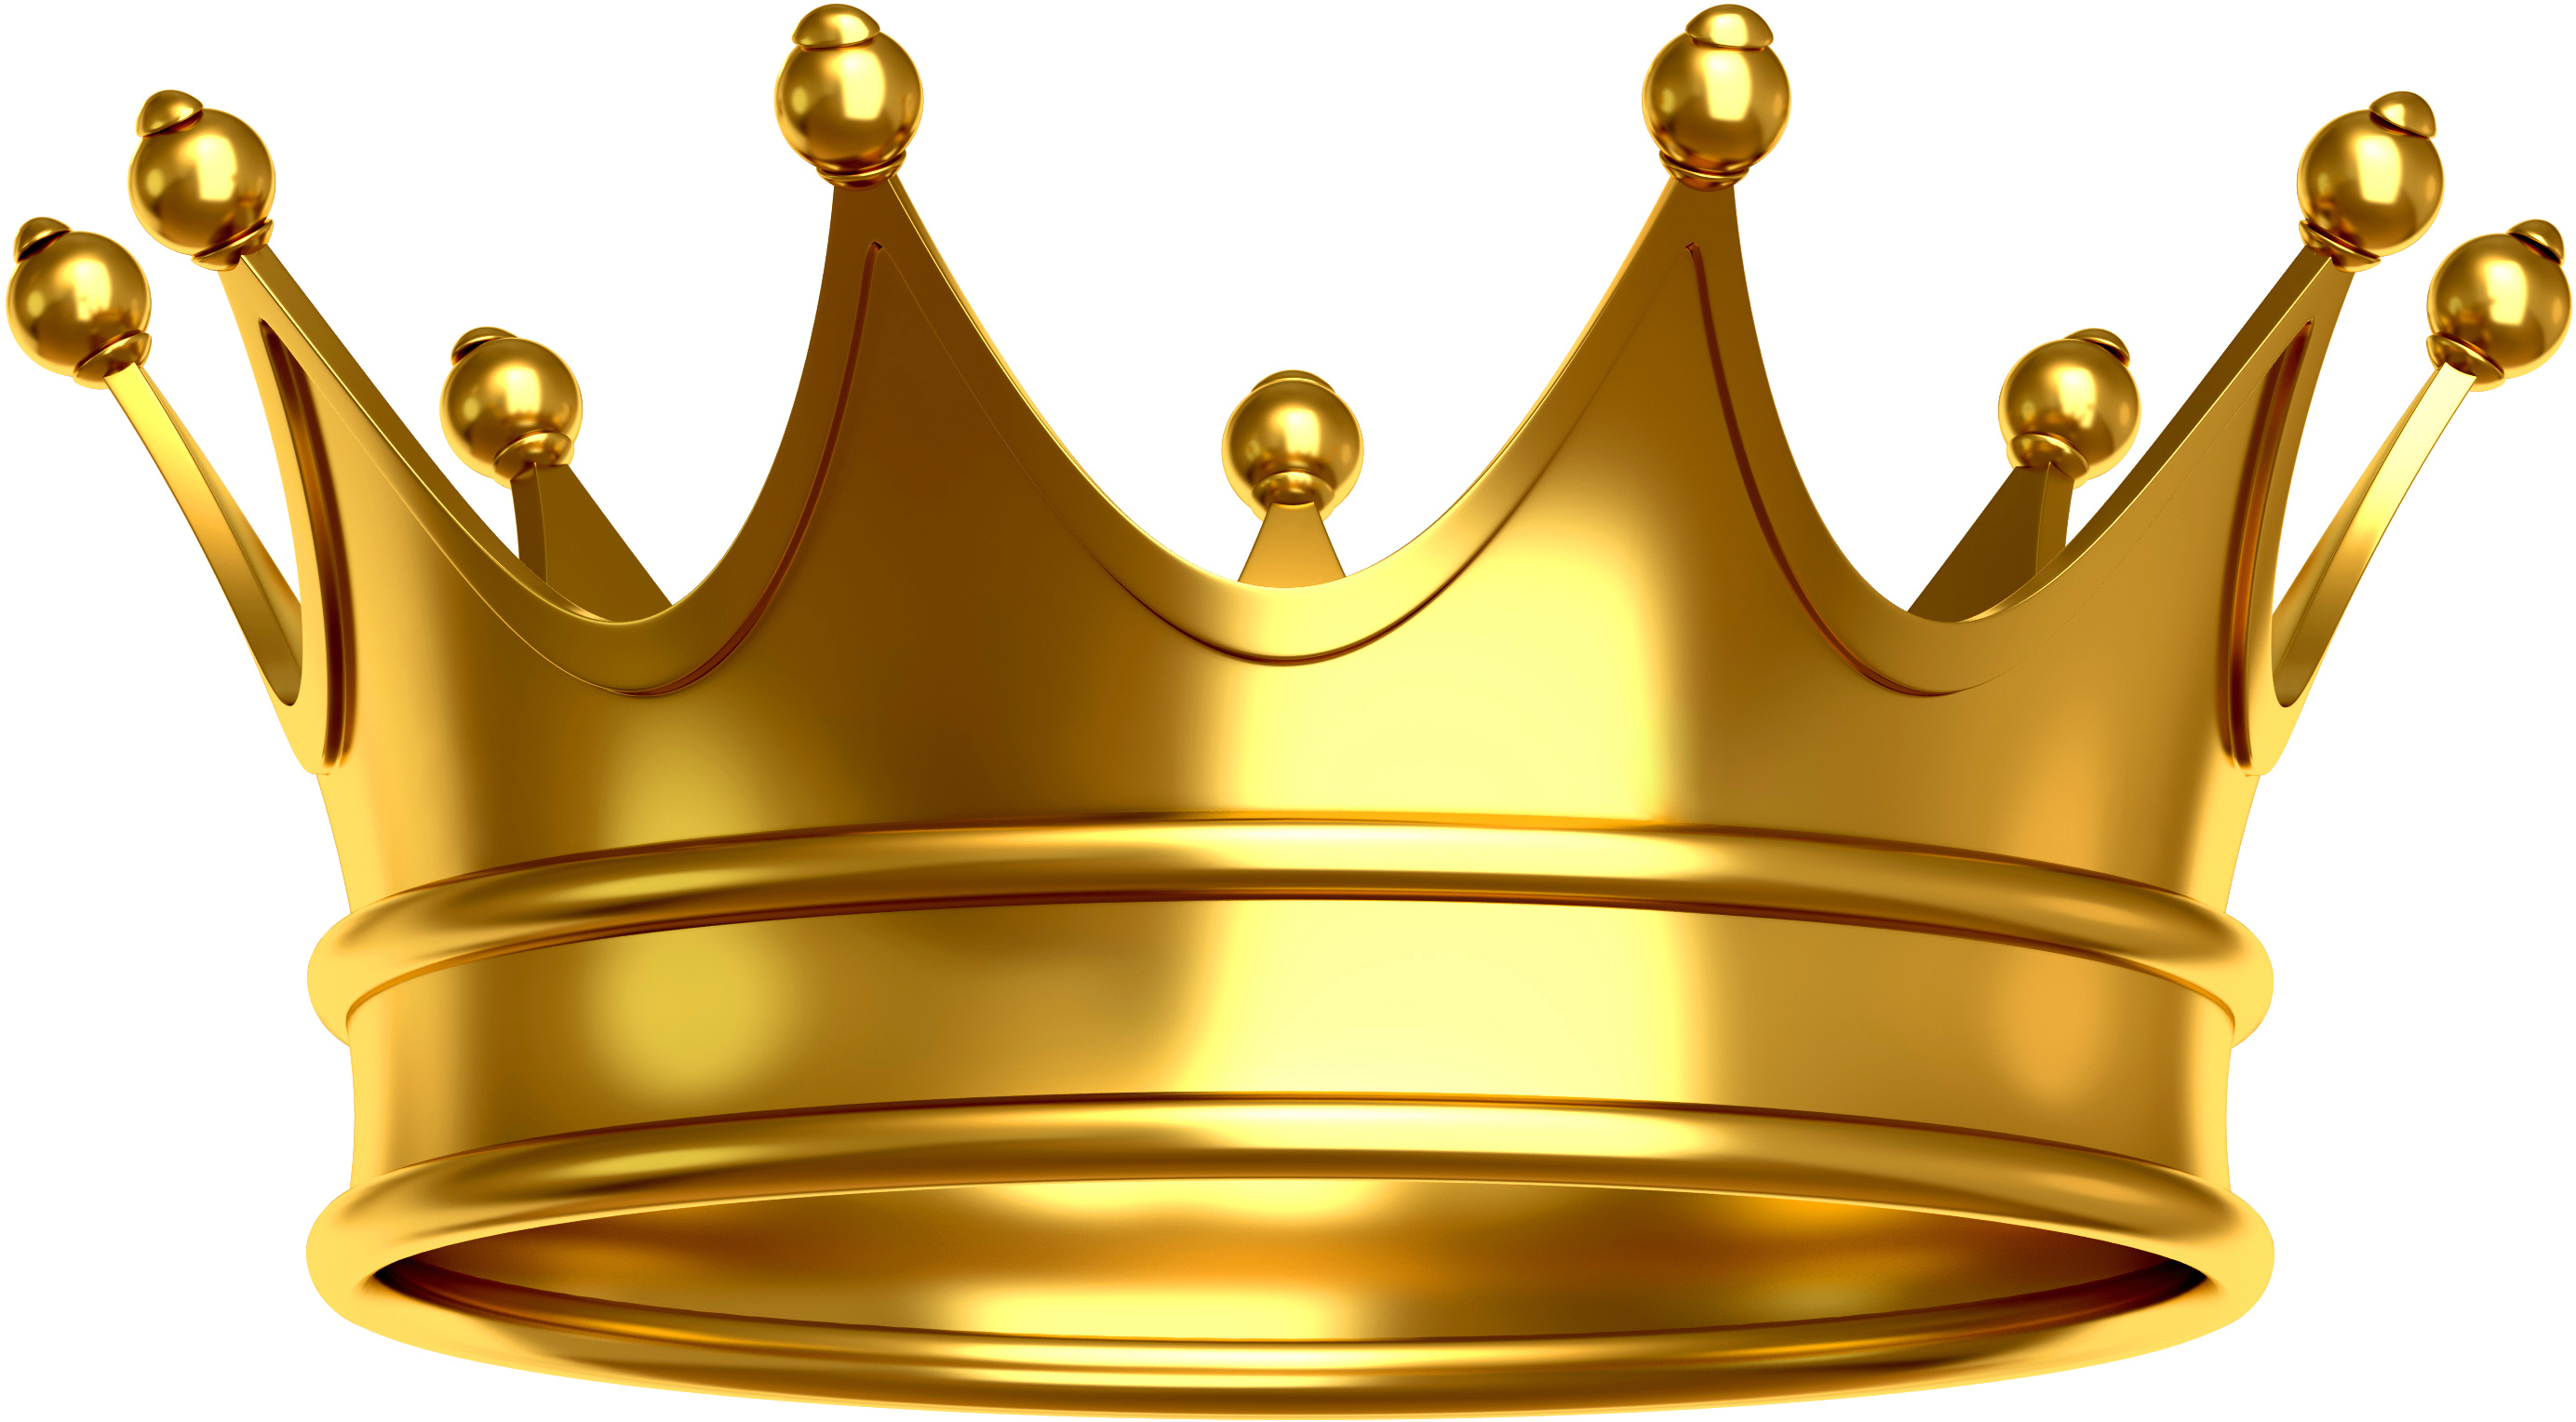 Crown clipart png jpg freeuse stock Gold Crown Clipart - Clipart Kid jpg freeuse stock